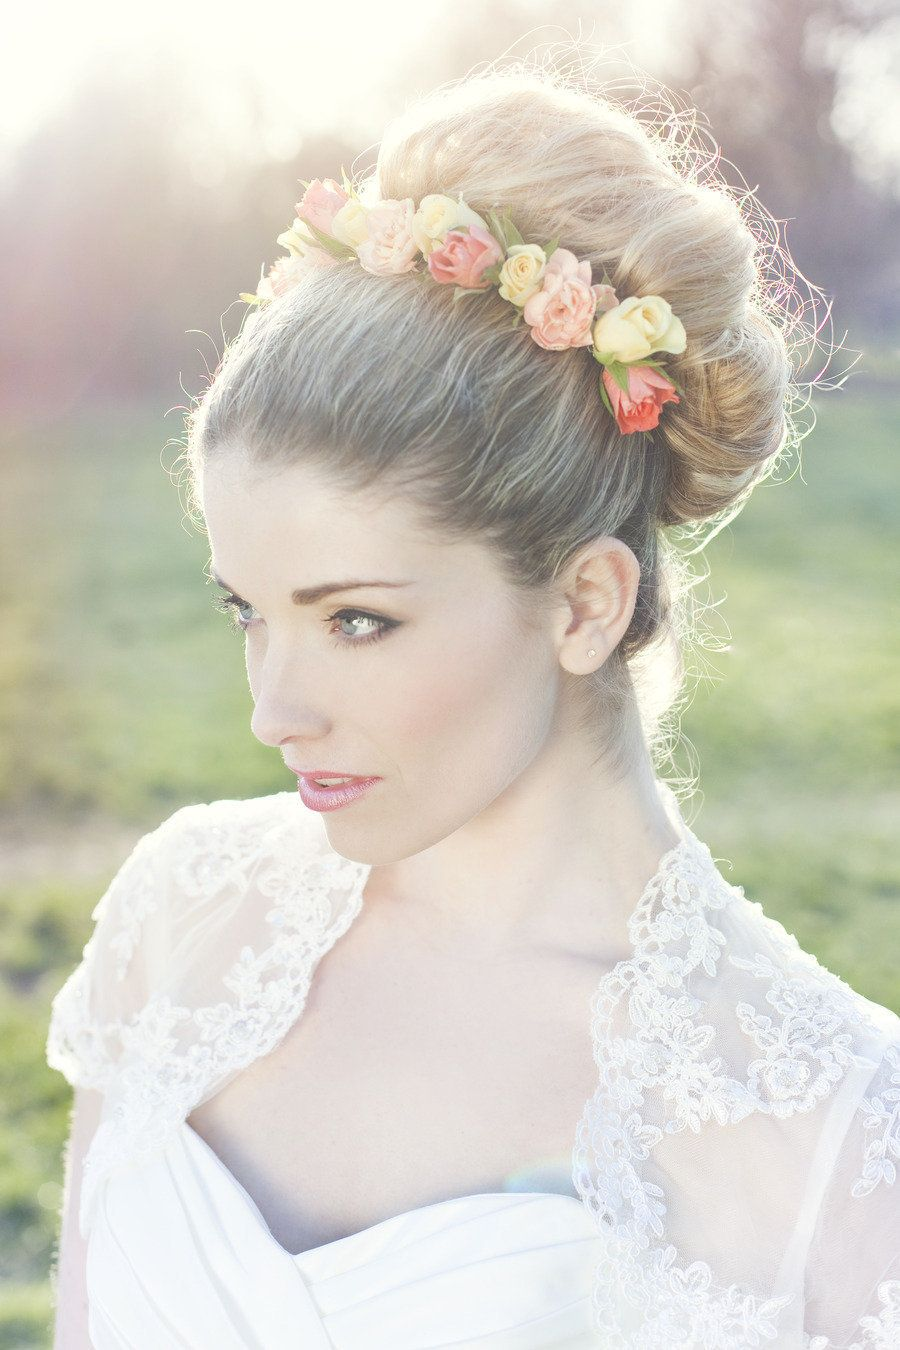 WIUP + Hair Flower Inspiration + Winners! | Flower bun, Hair makeup ...